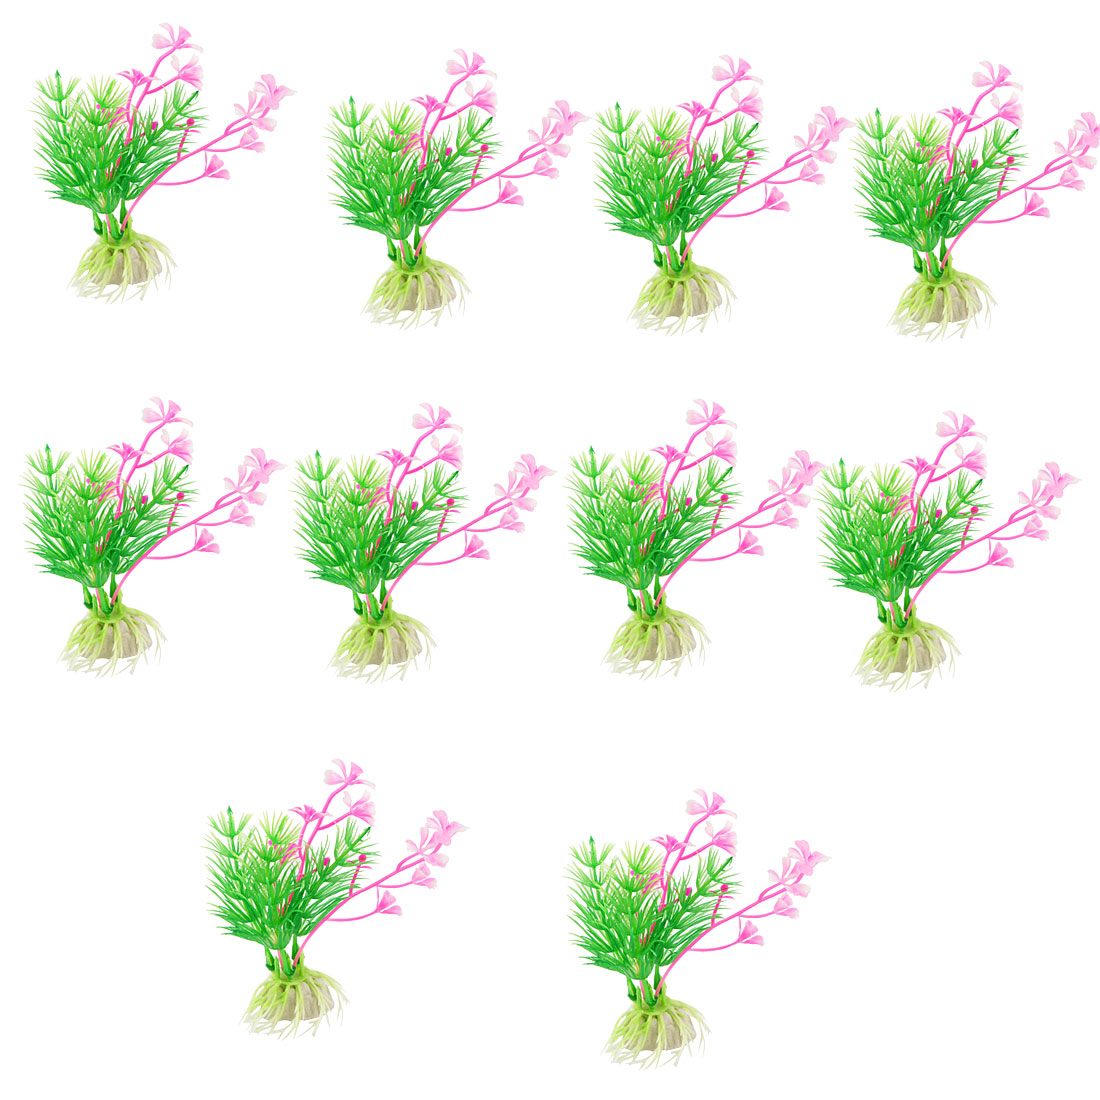 "Fish Tank Ornament Green Pink Plastic 4.3"" High Plant Grass 10 Pcs"